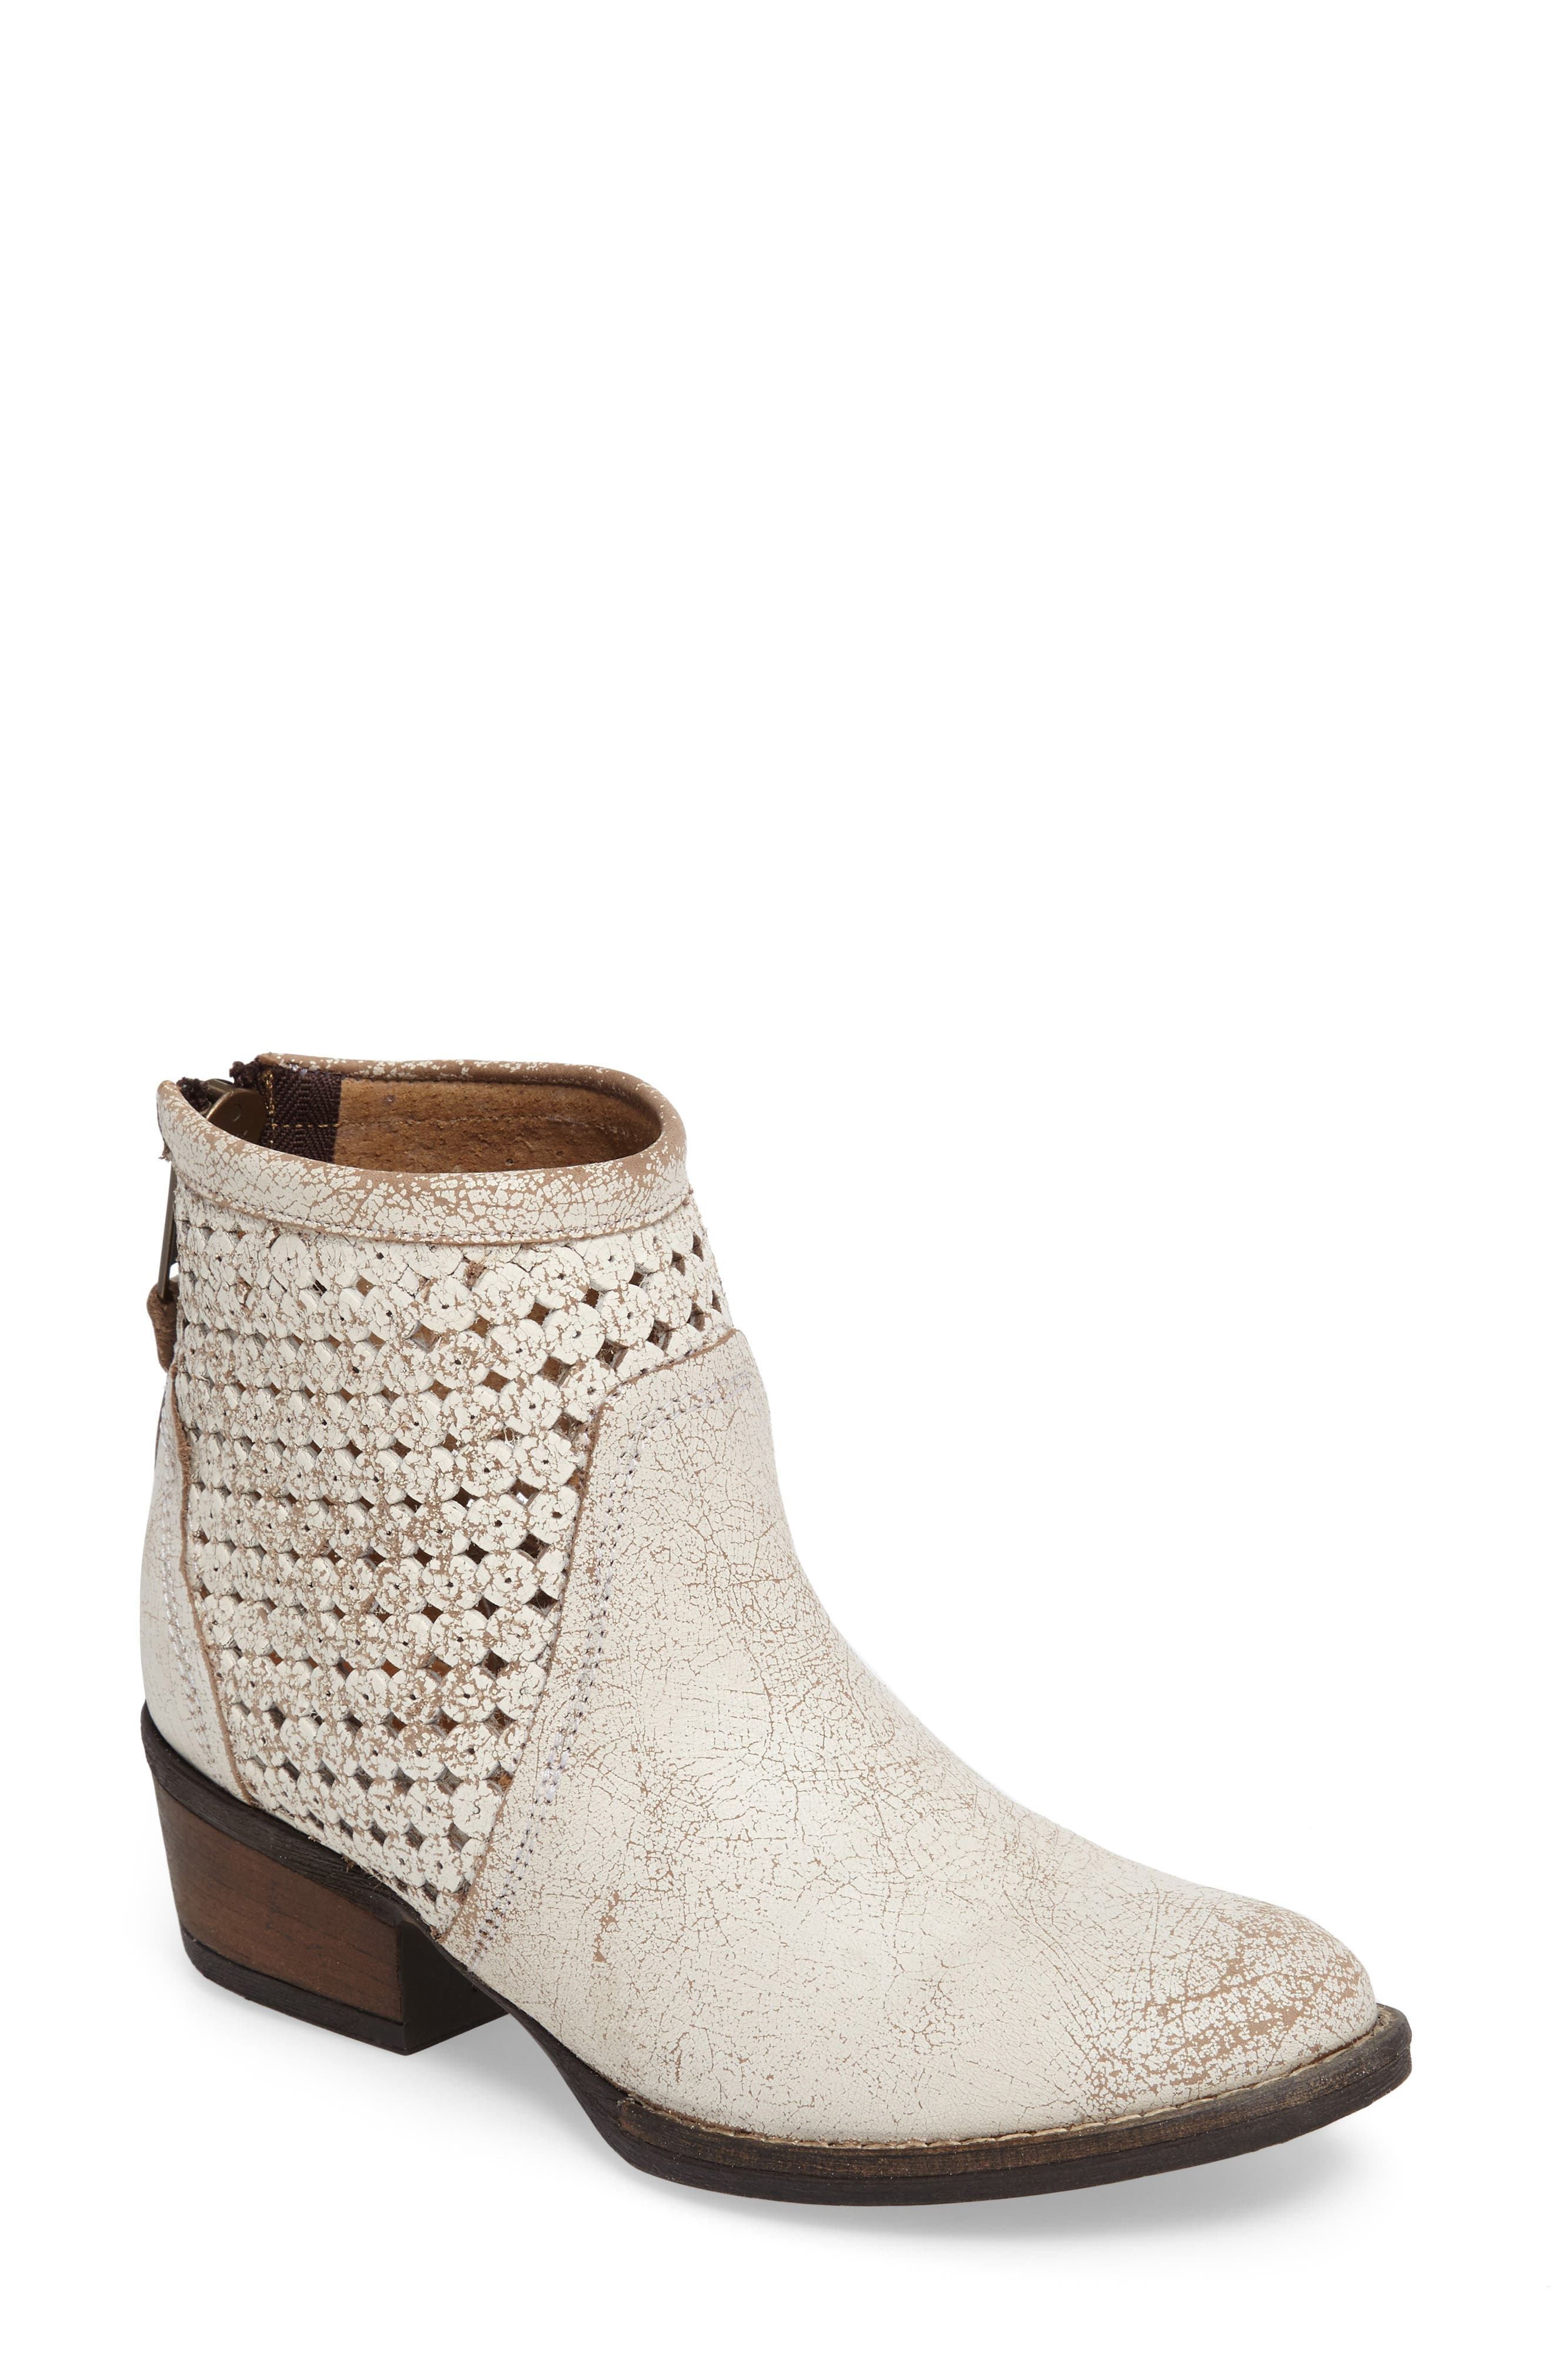 Namaste Bootie,                             Main thumbnail 1, color,                             Off White Leather